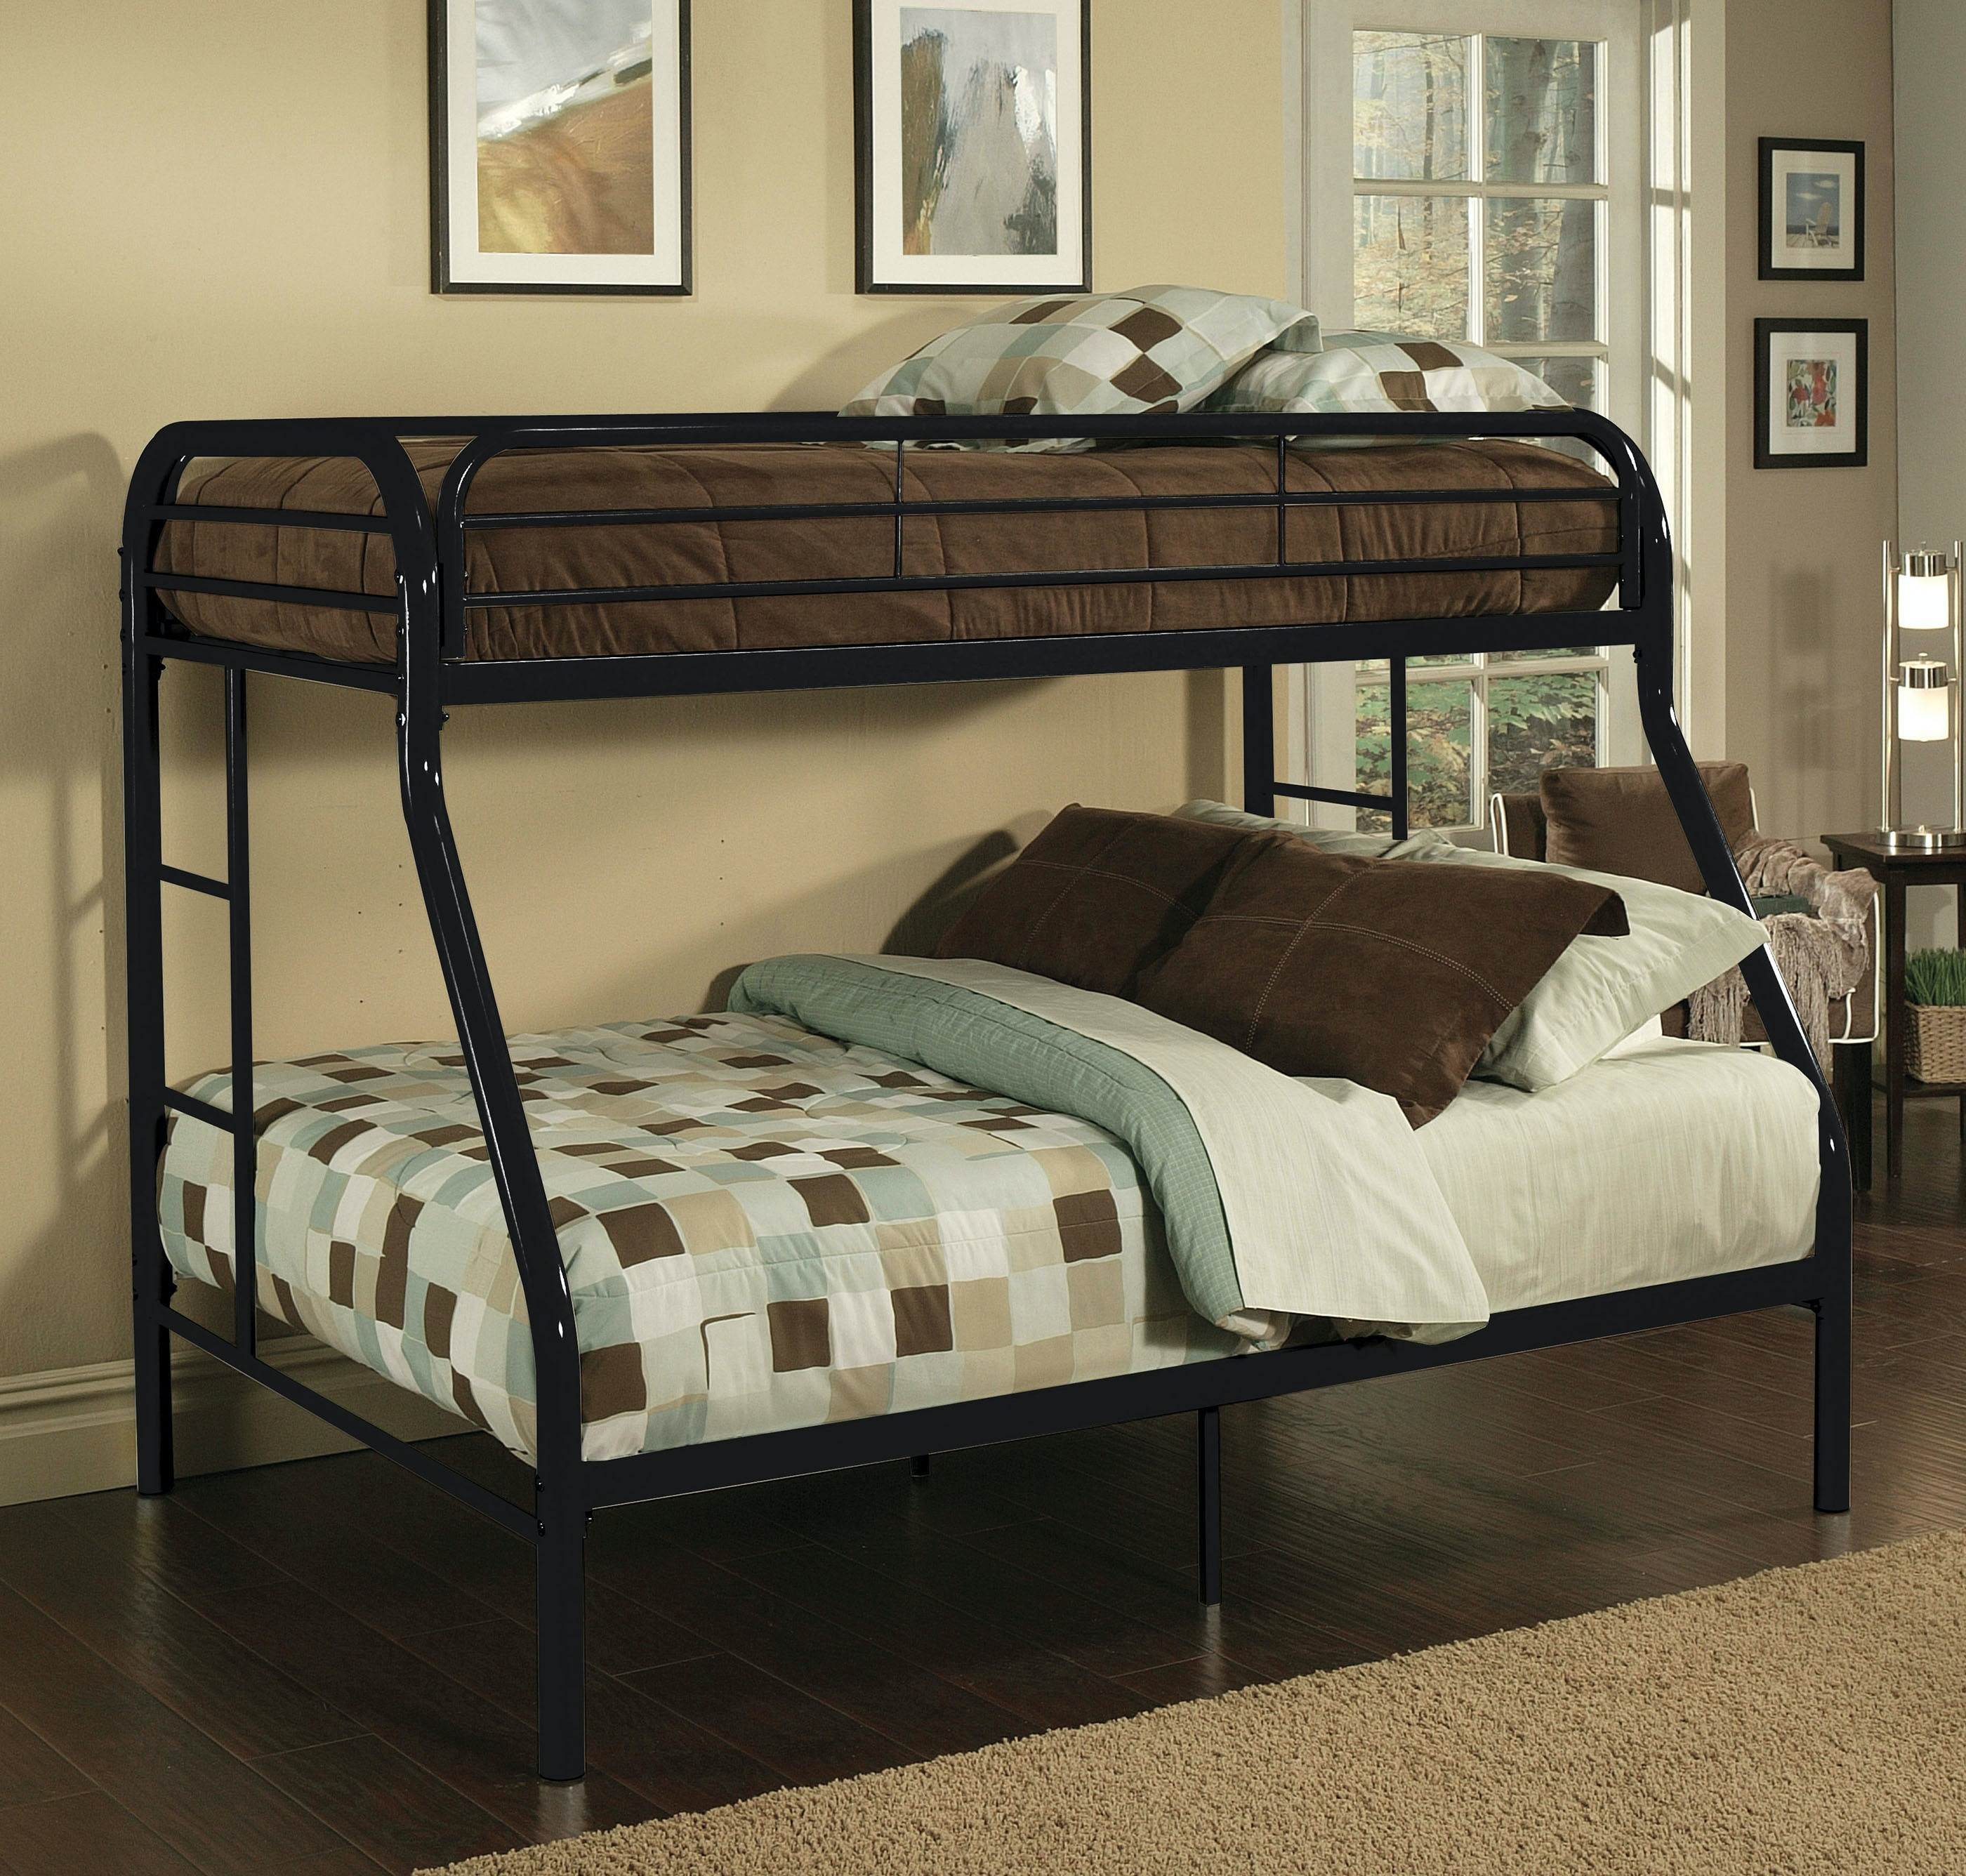 Acme Furniture Youth Tritan Twin Xl Over Queen Bunk Bed 02052bk